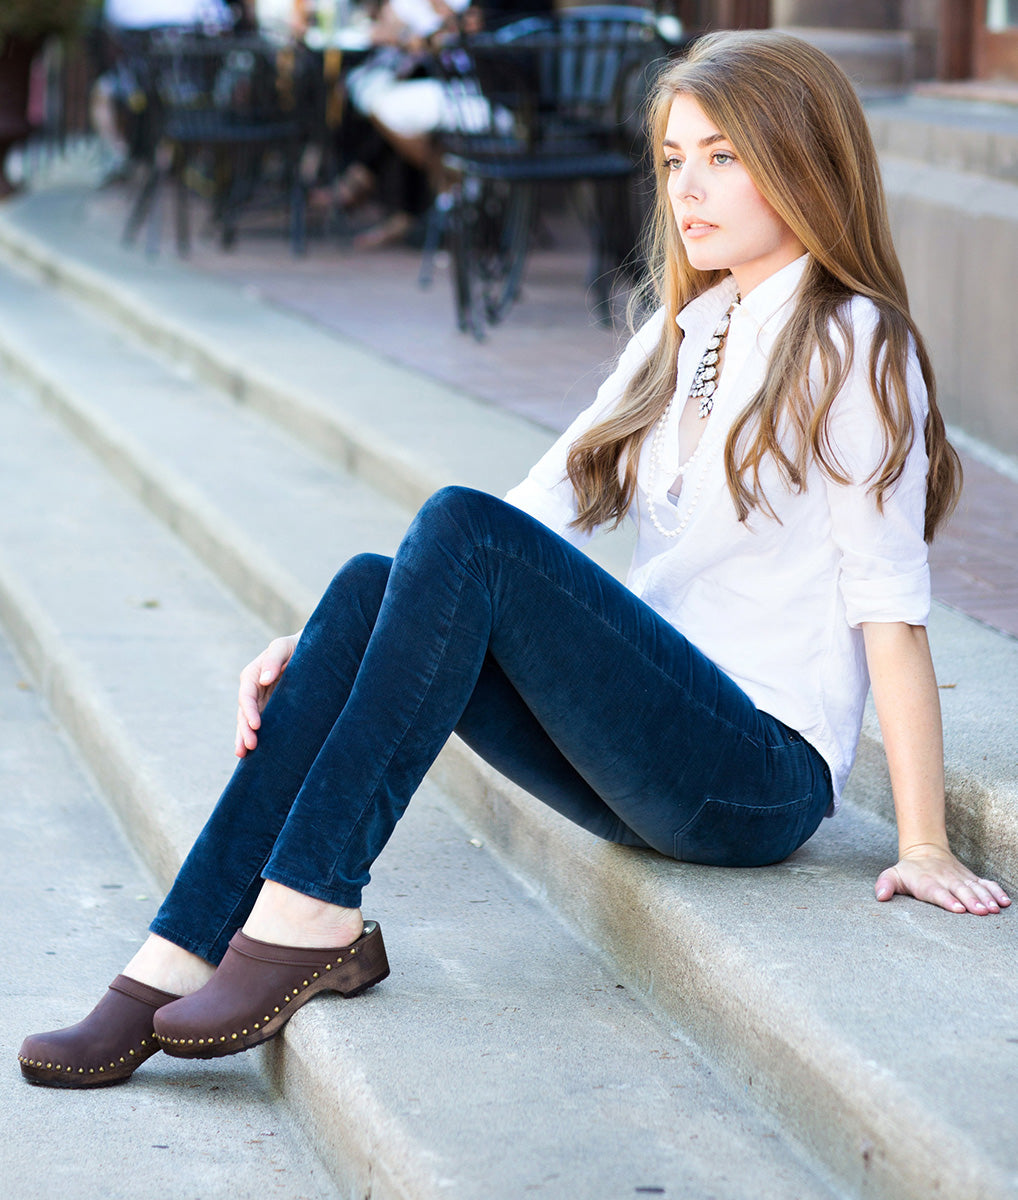 Choosing Clogs For Comfort: Finding Clogs with Arch Support & More